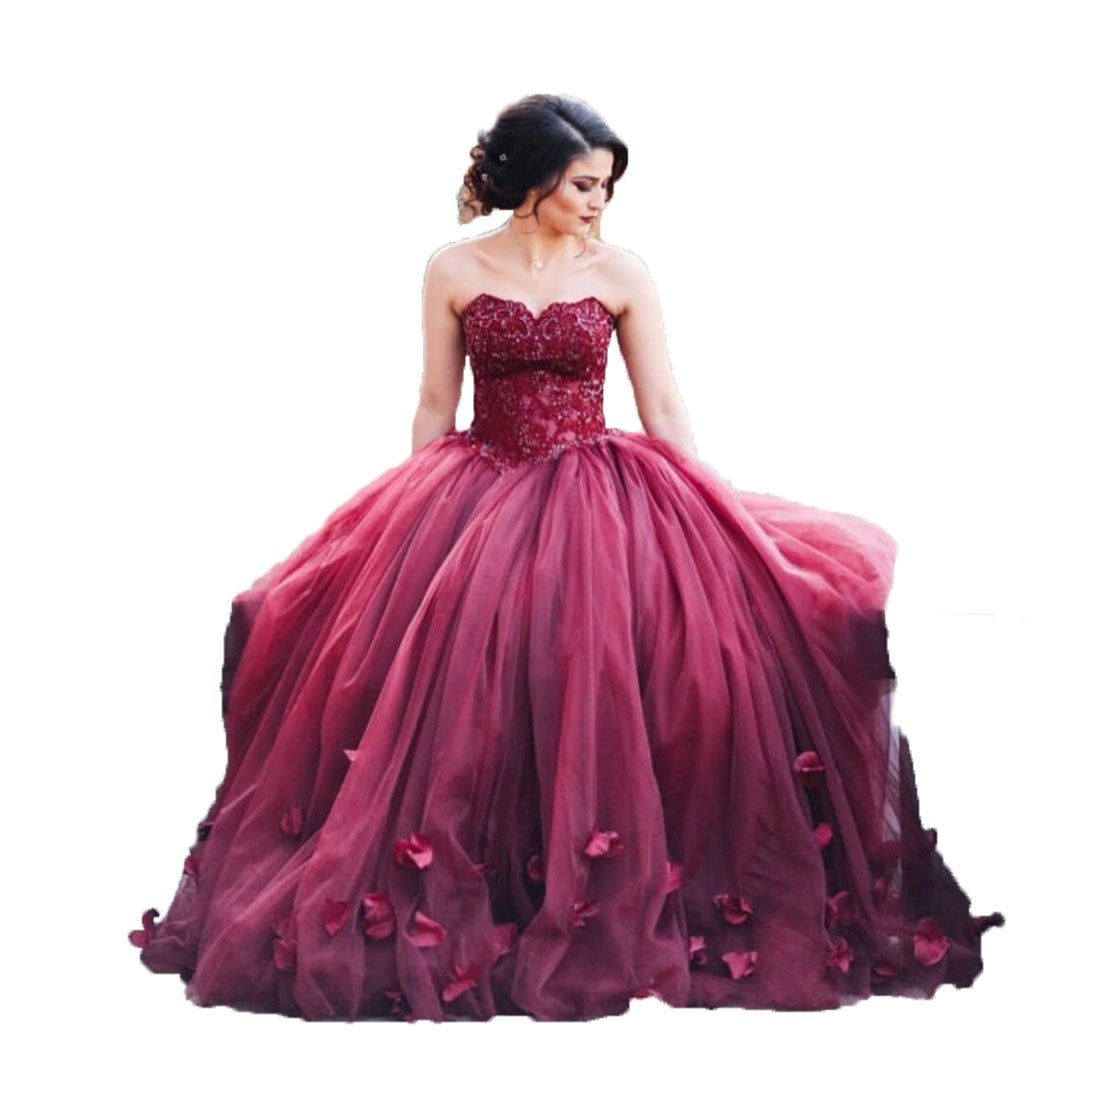 Uryouthstyle 2017 Strapless Quinceanera Ball Gowns Lace Prom Dresses US18w Red